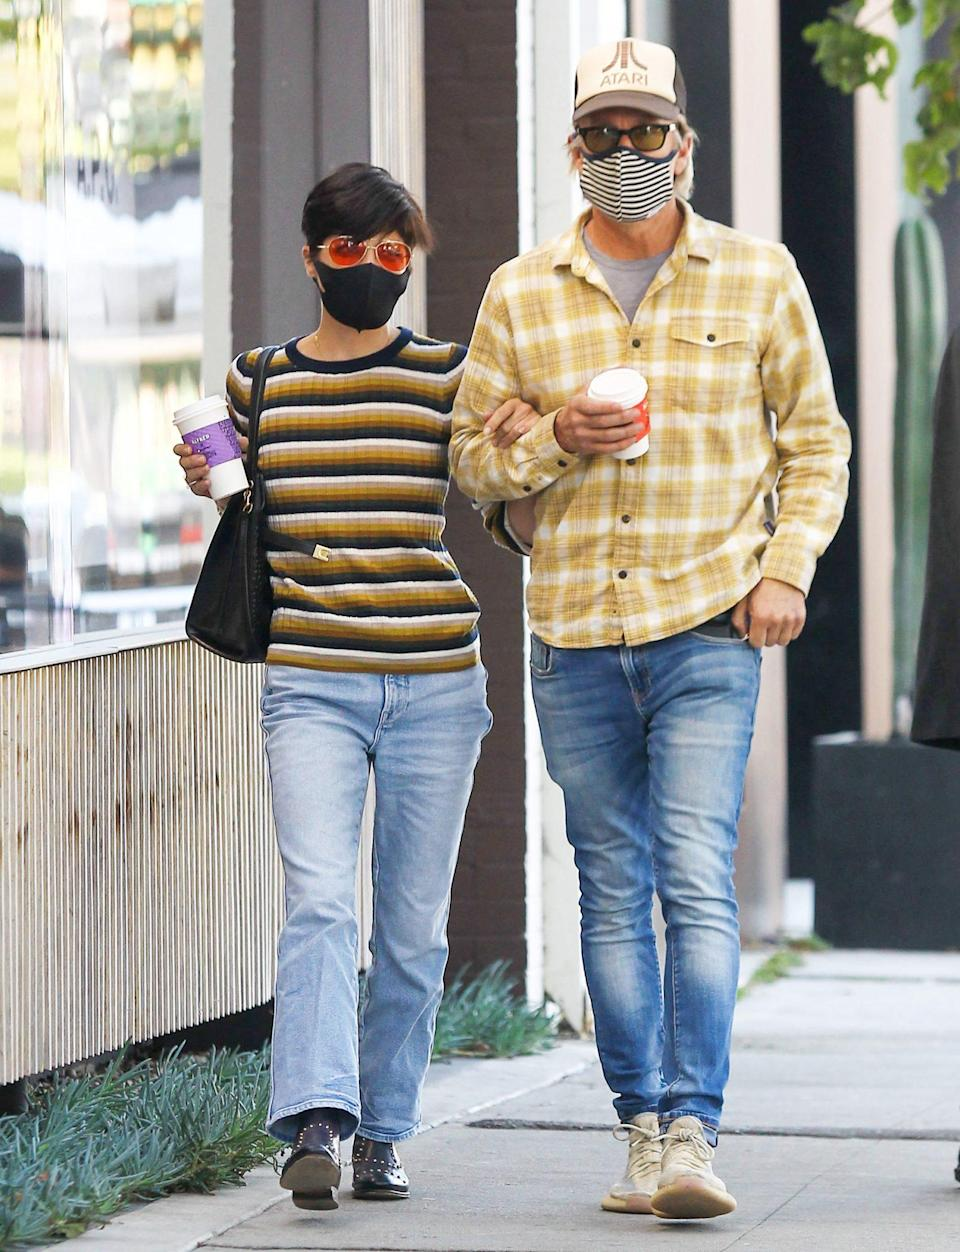 <p>Selma Blair and her boyfriend Ron Carlson stroll arm-in-arm while out for coffee on Tuesday in L.A.</p>